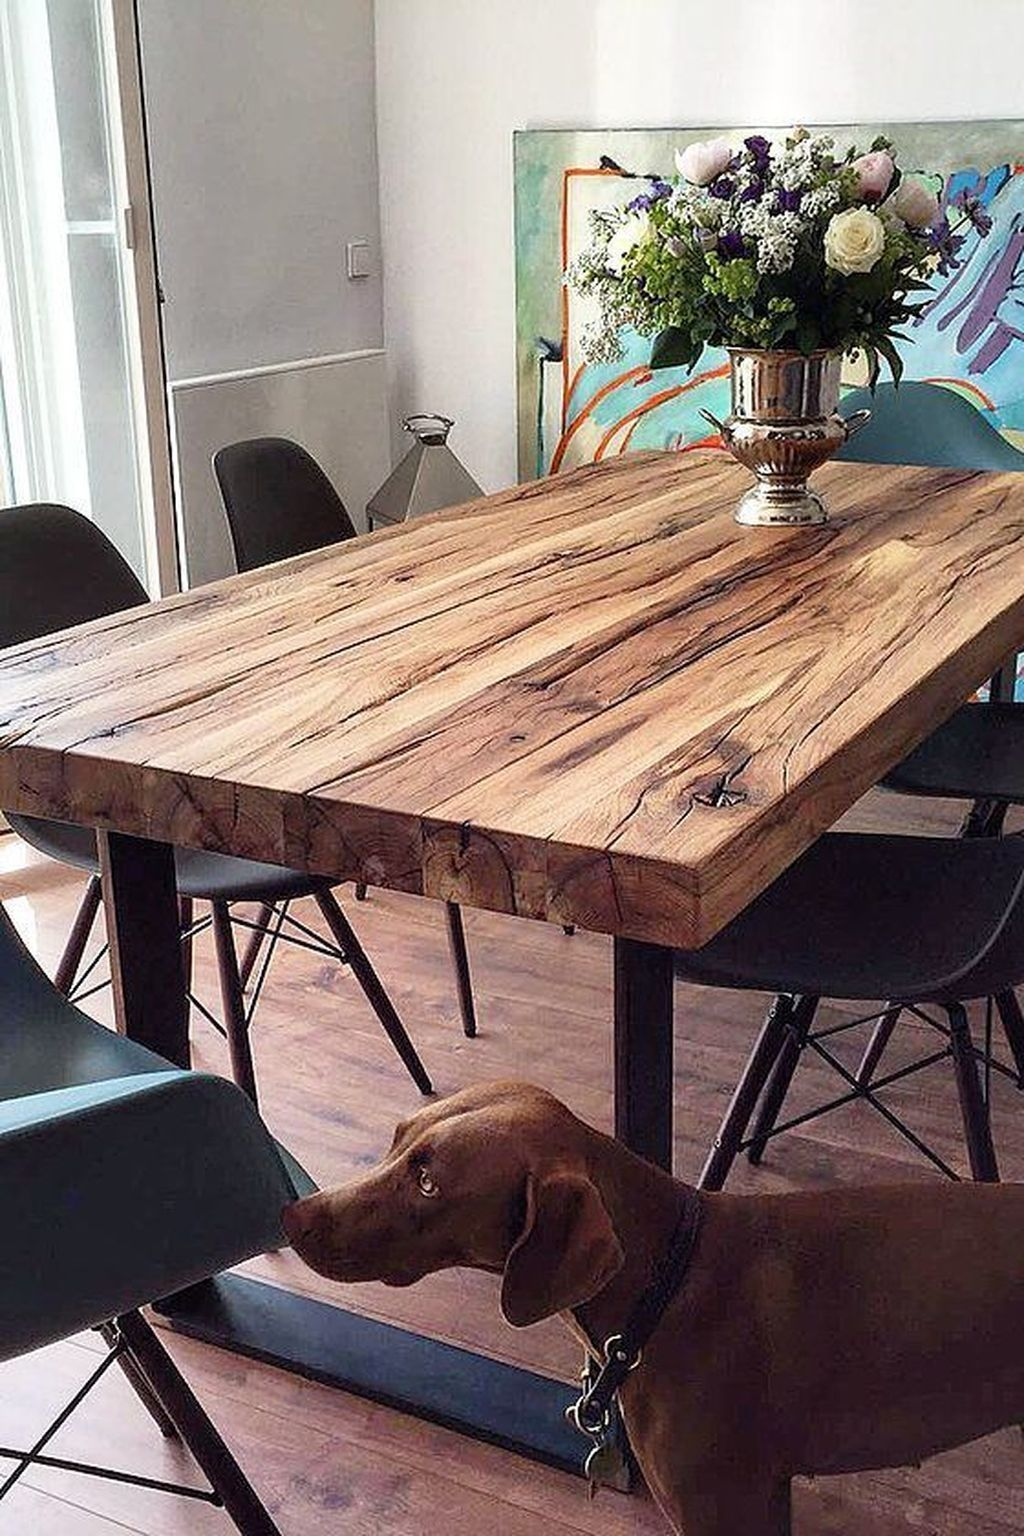 Unique And Creative Wooden Furniture Ideas For Your Home Decor 27 Wooden Dining Tables Dining Table Solid Wood Table